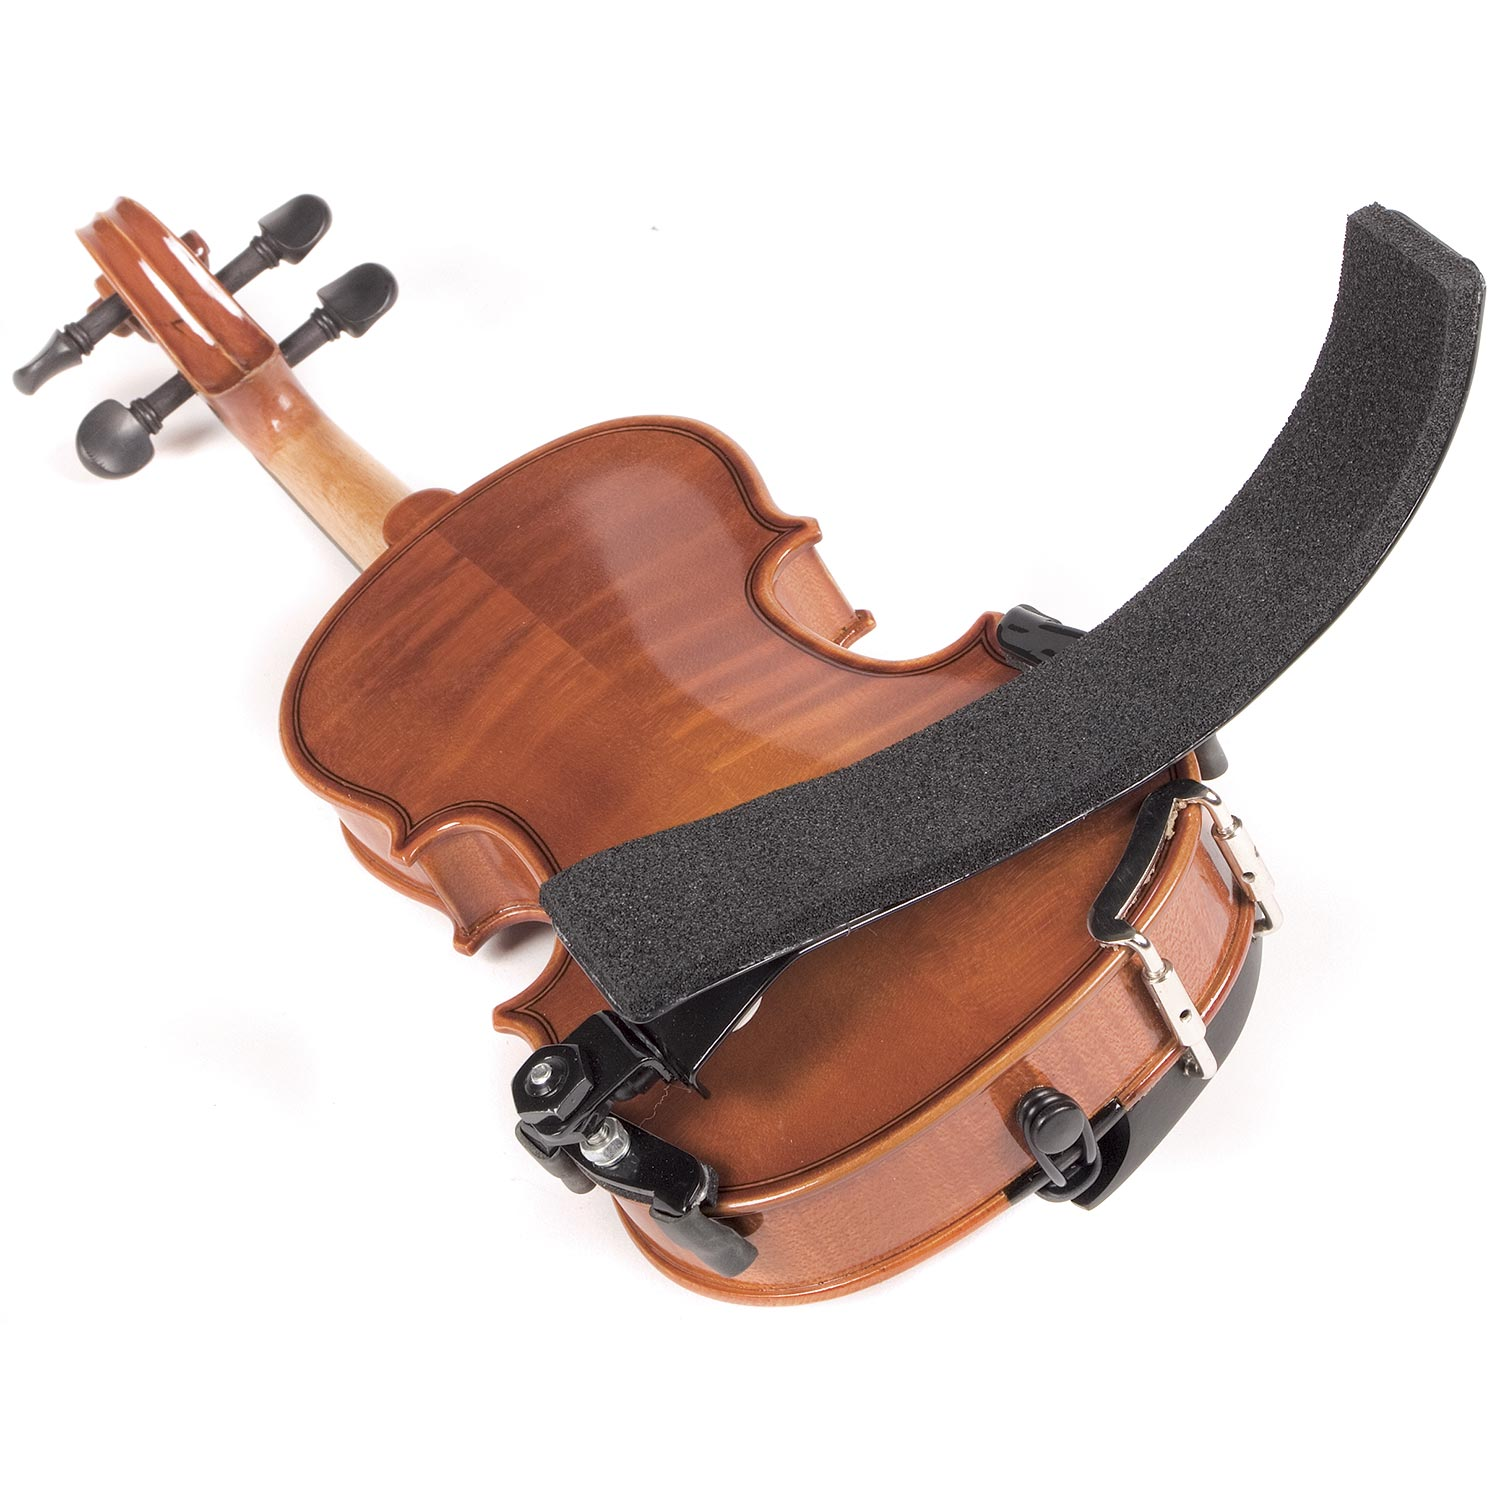 Bonmusica 1 16 Violin Shoulder Rest by Bonmusica